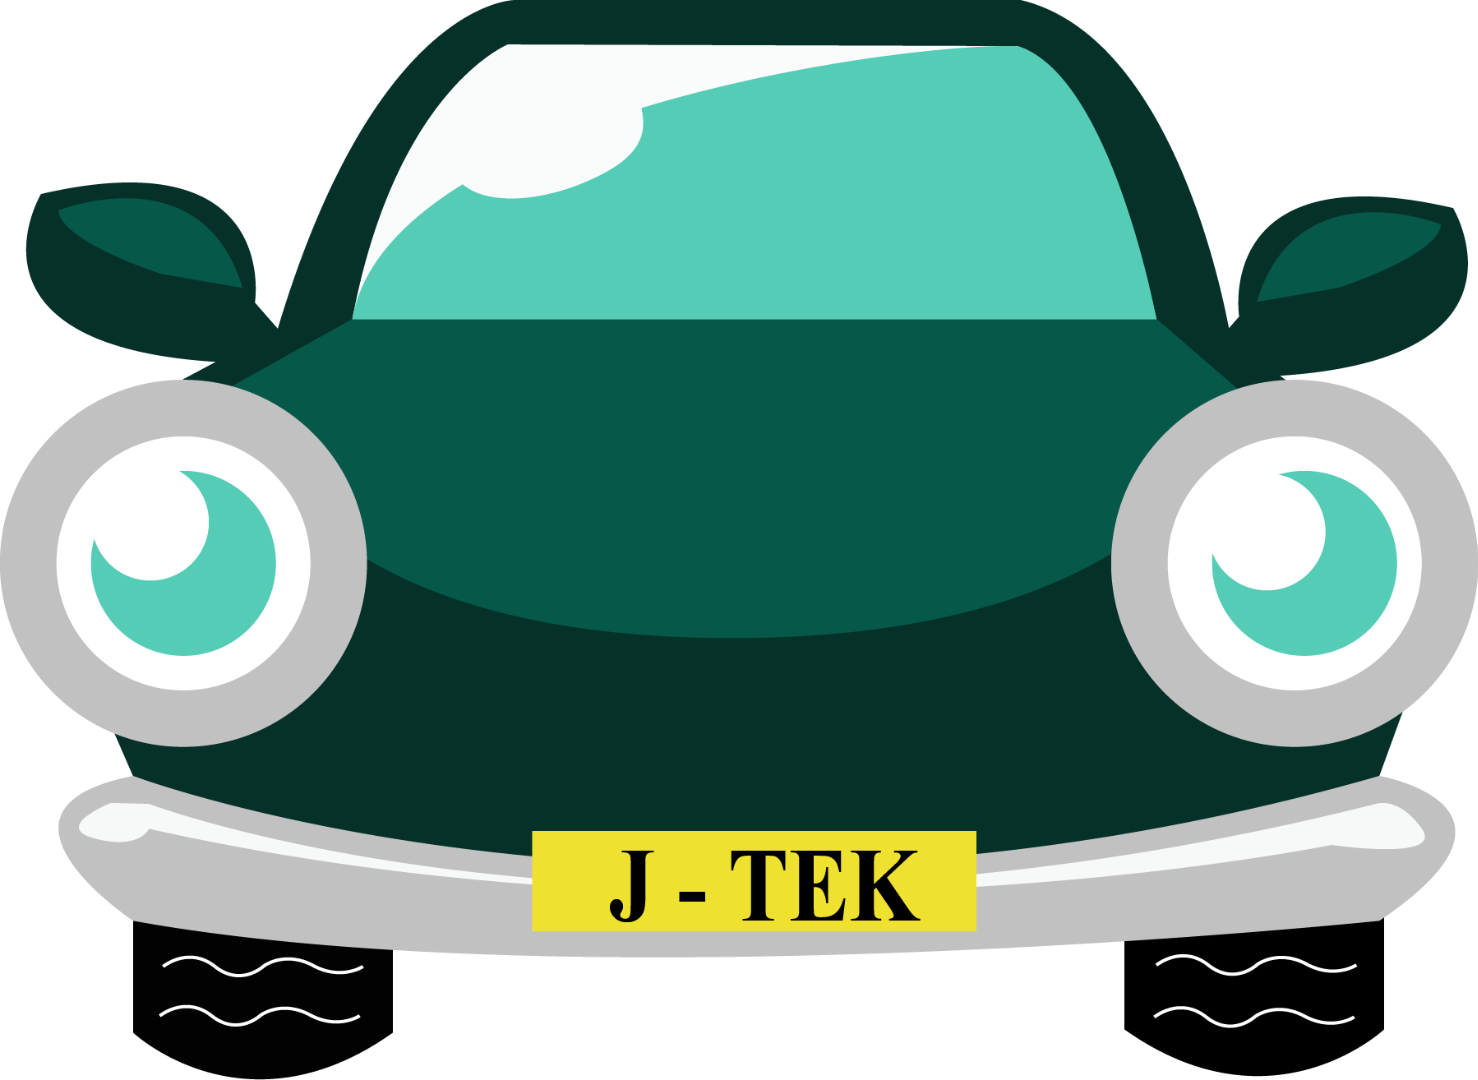 Cartoon Car With J-TEK Number Plate - Car MOT, Servicing & Tyres in Ely at J-Tek